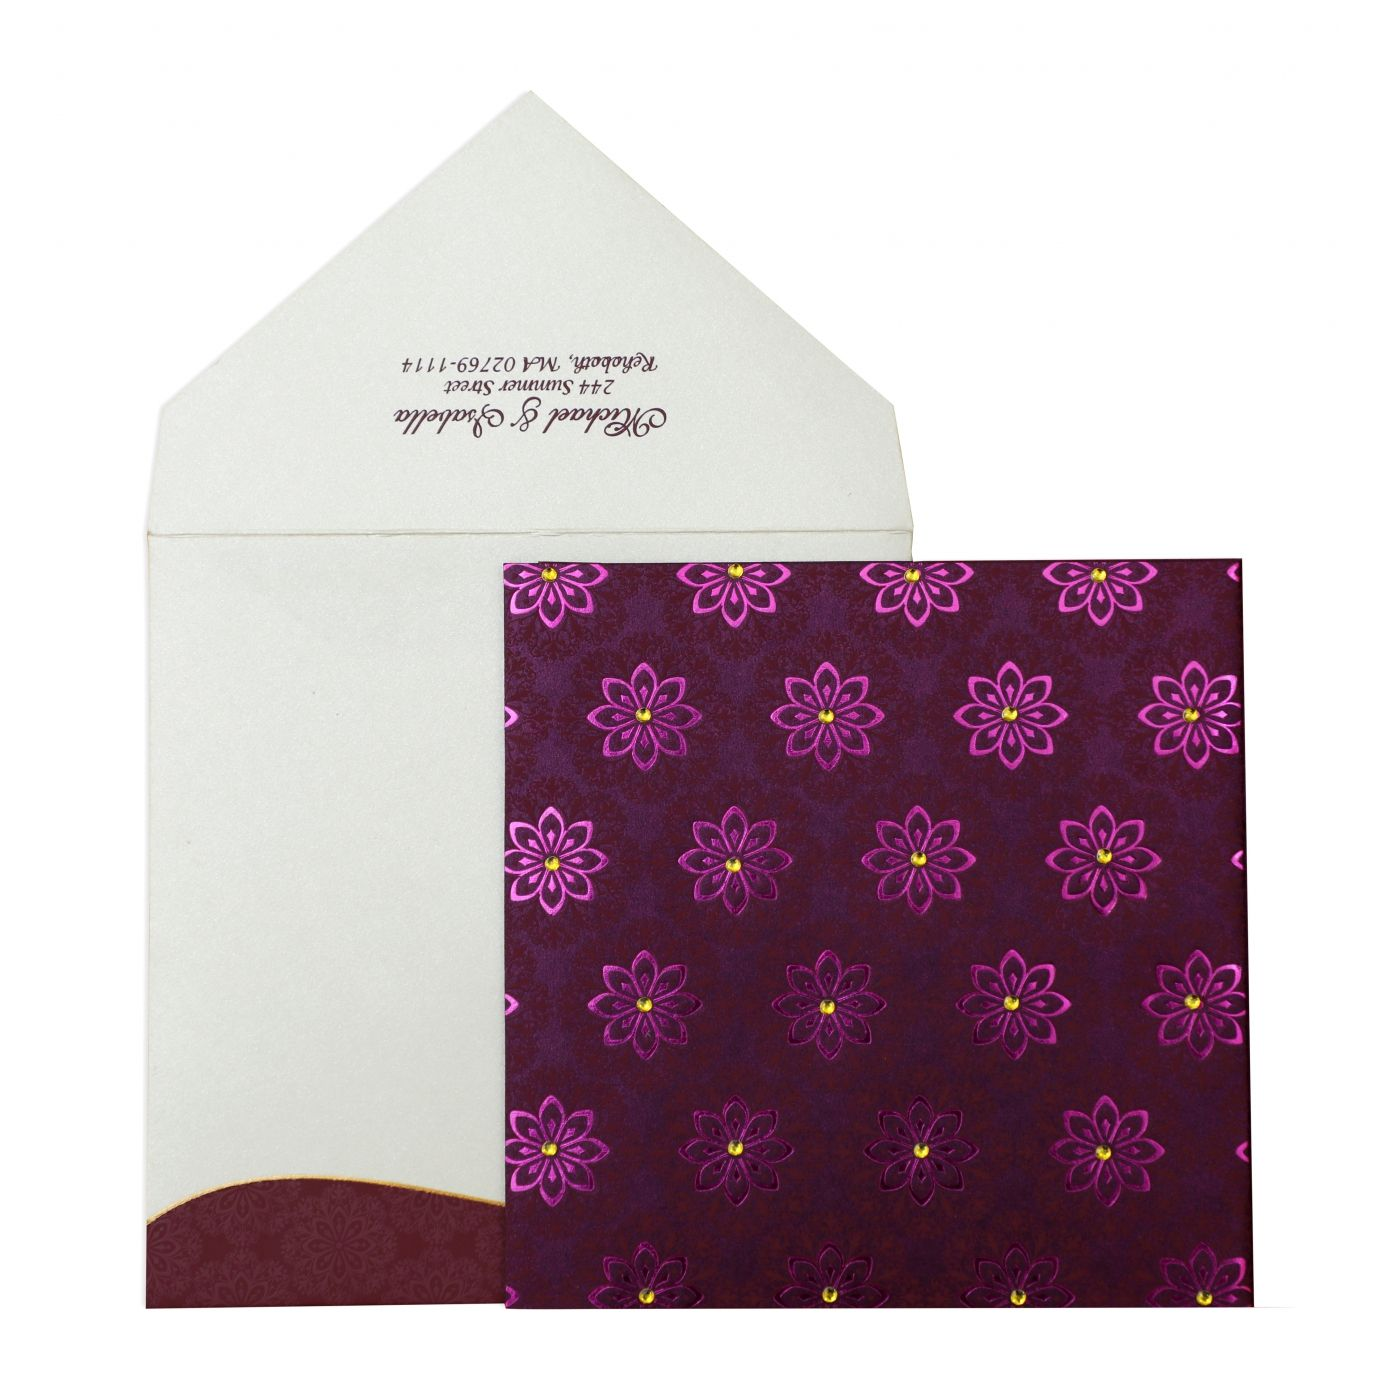 PURPLE SHIMMERY FLORAL THEMED - FOIL STAMPED WEDDING INVITATION : CSO-837 - IndianWeddingCards